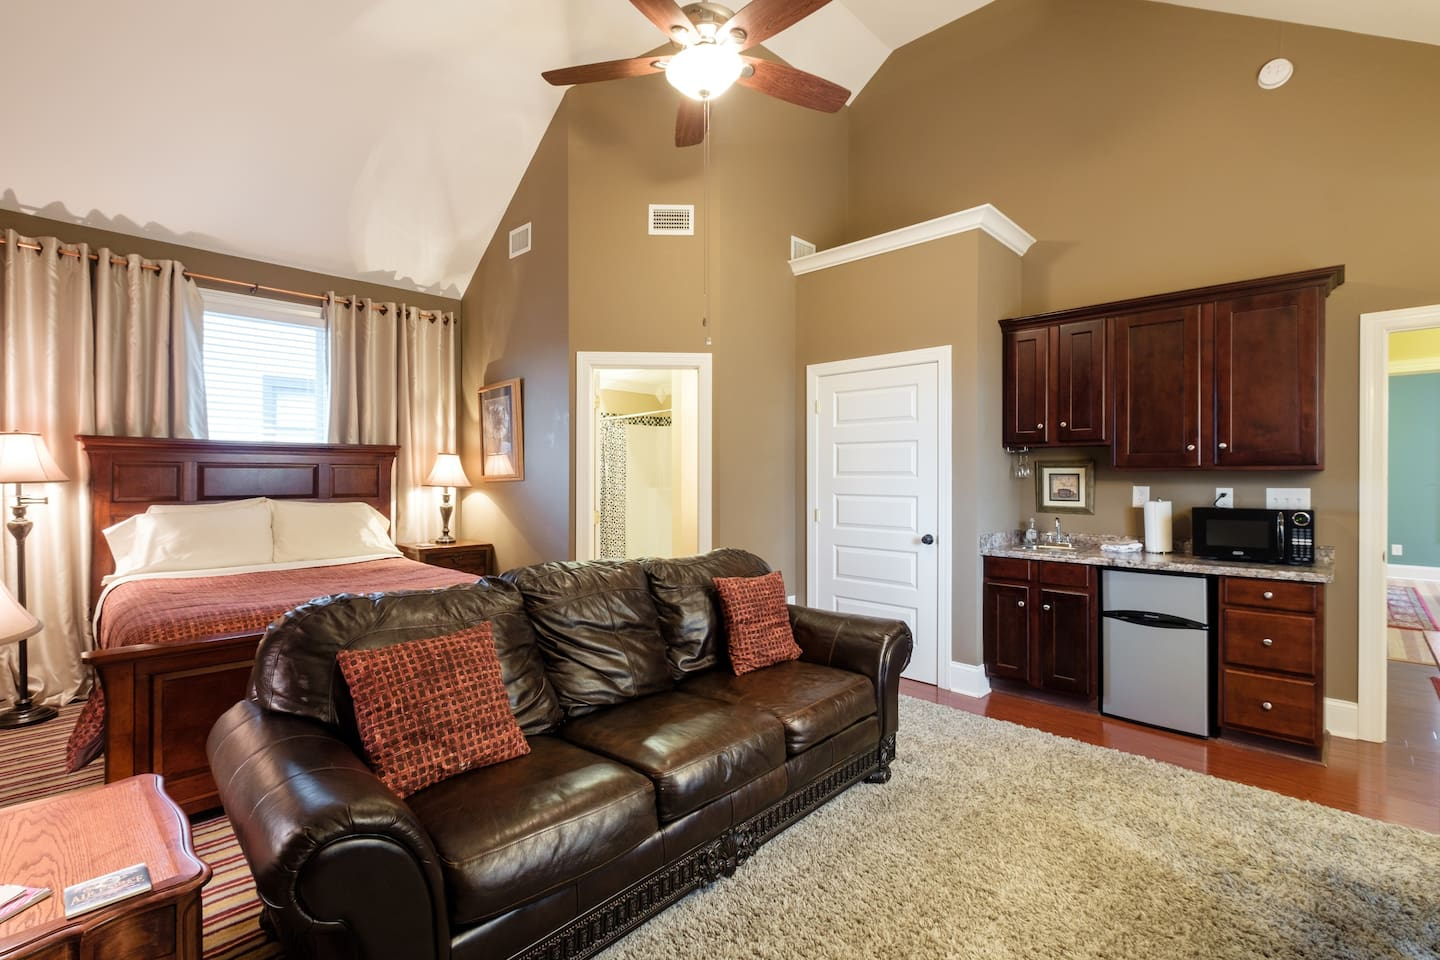 Love the vaulted ceilings!!